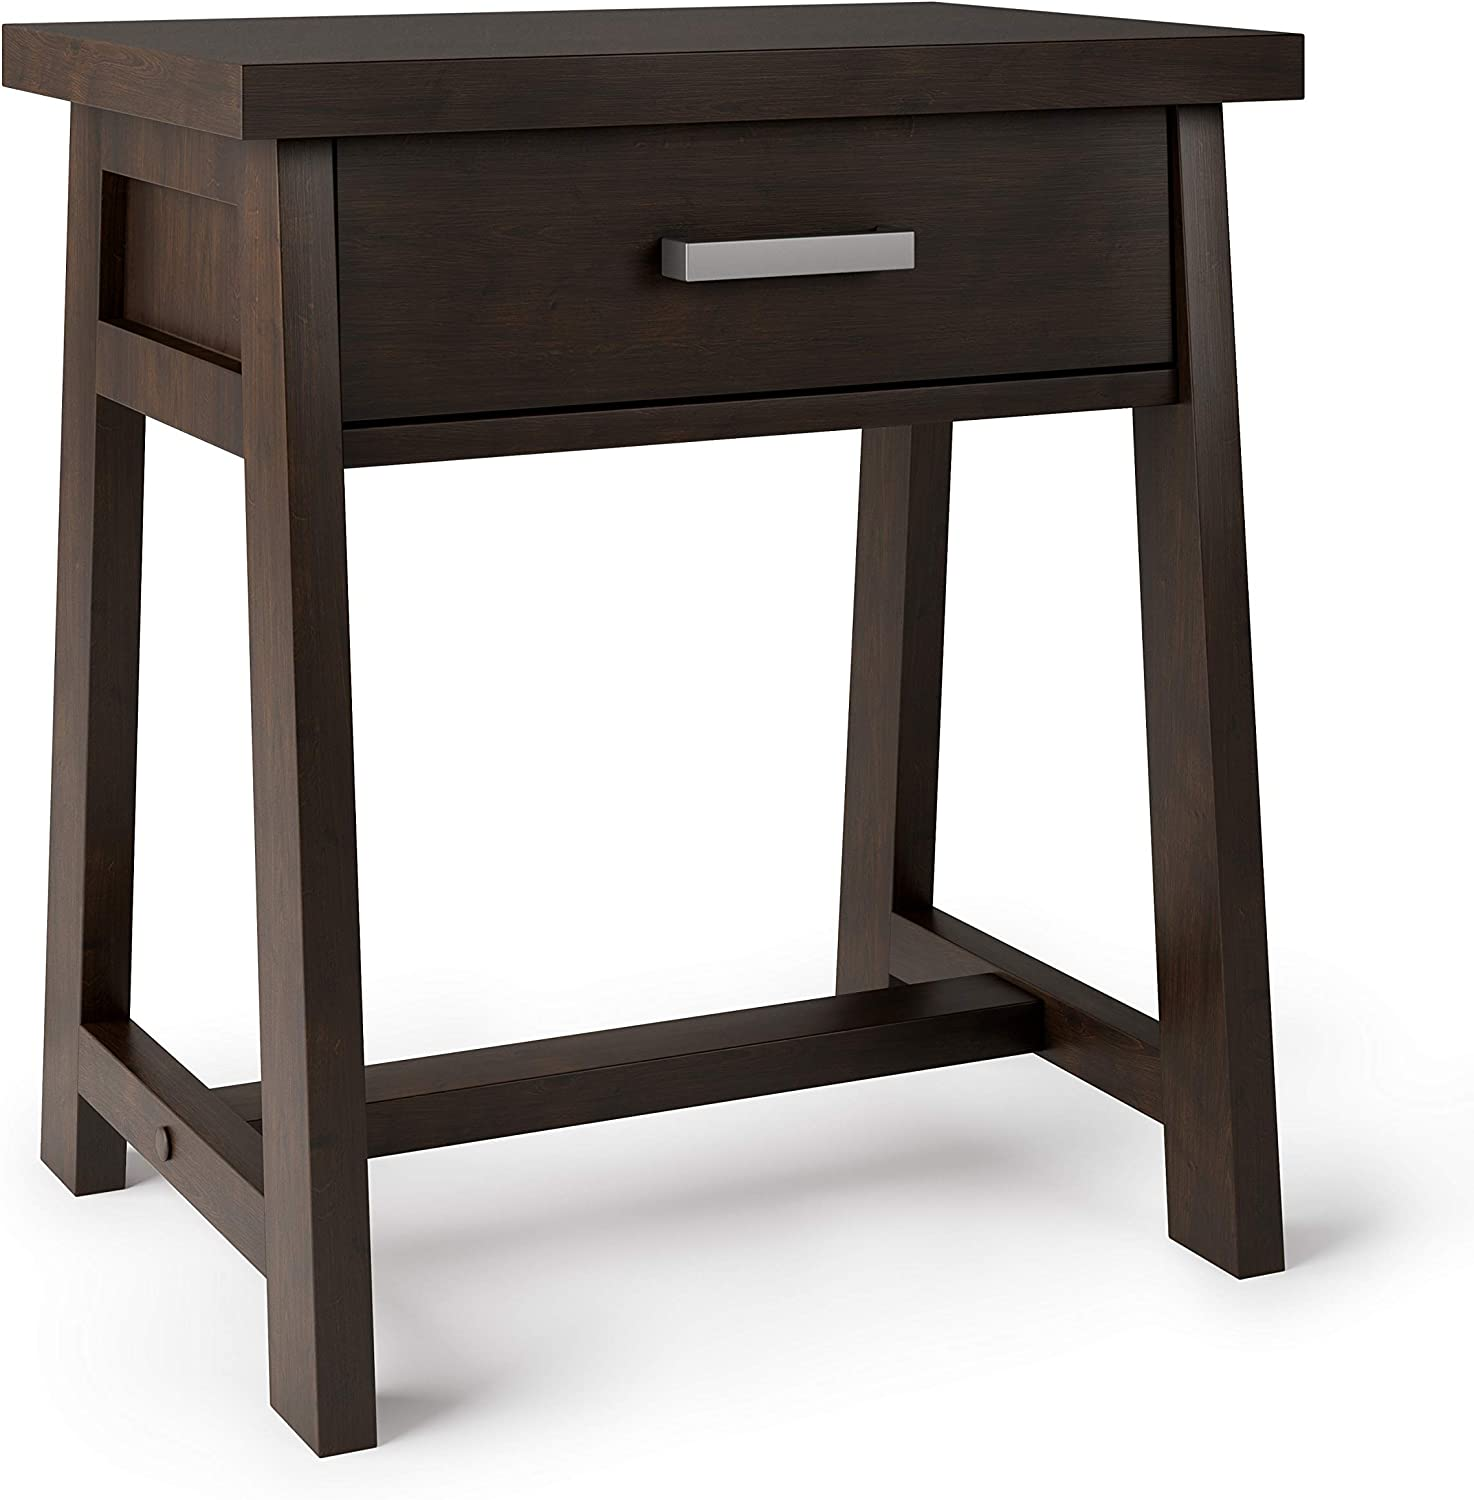 SIMPLIHOME Sawhorse SOLID WOOD 24 inch Wide Modern Industrial Bedside Nightstand Table in Dark Chestnut Brown